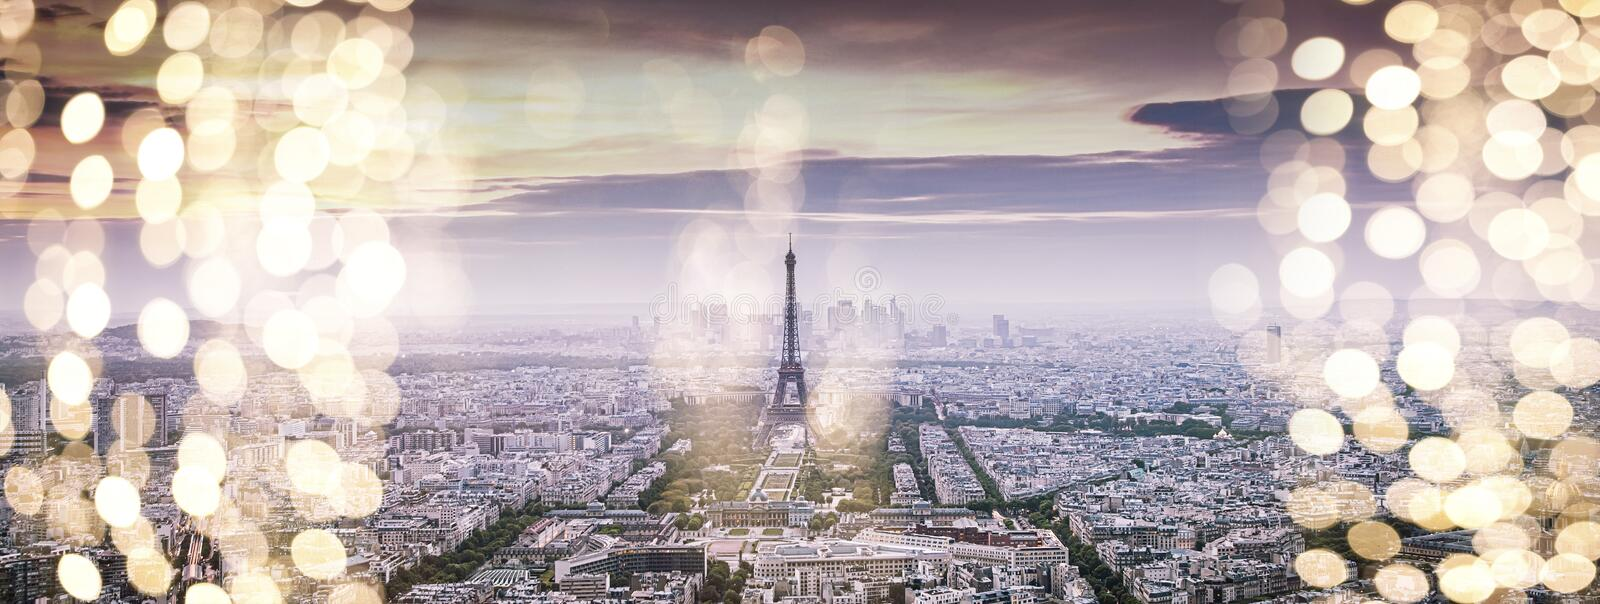 holiday lights in Paris, eiffel tower - Christmas destination stock photography